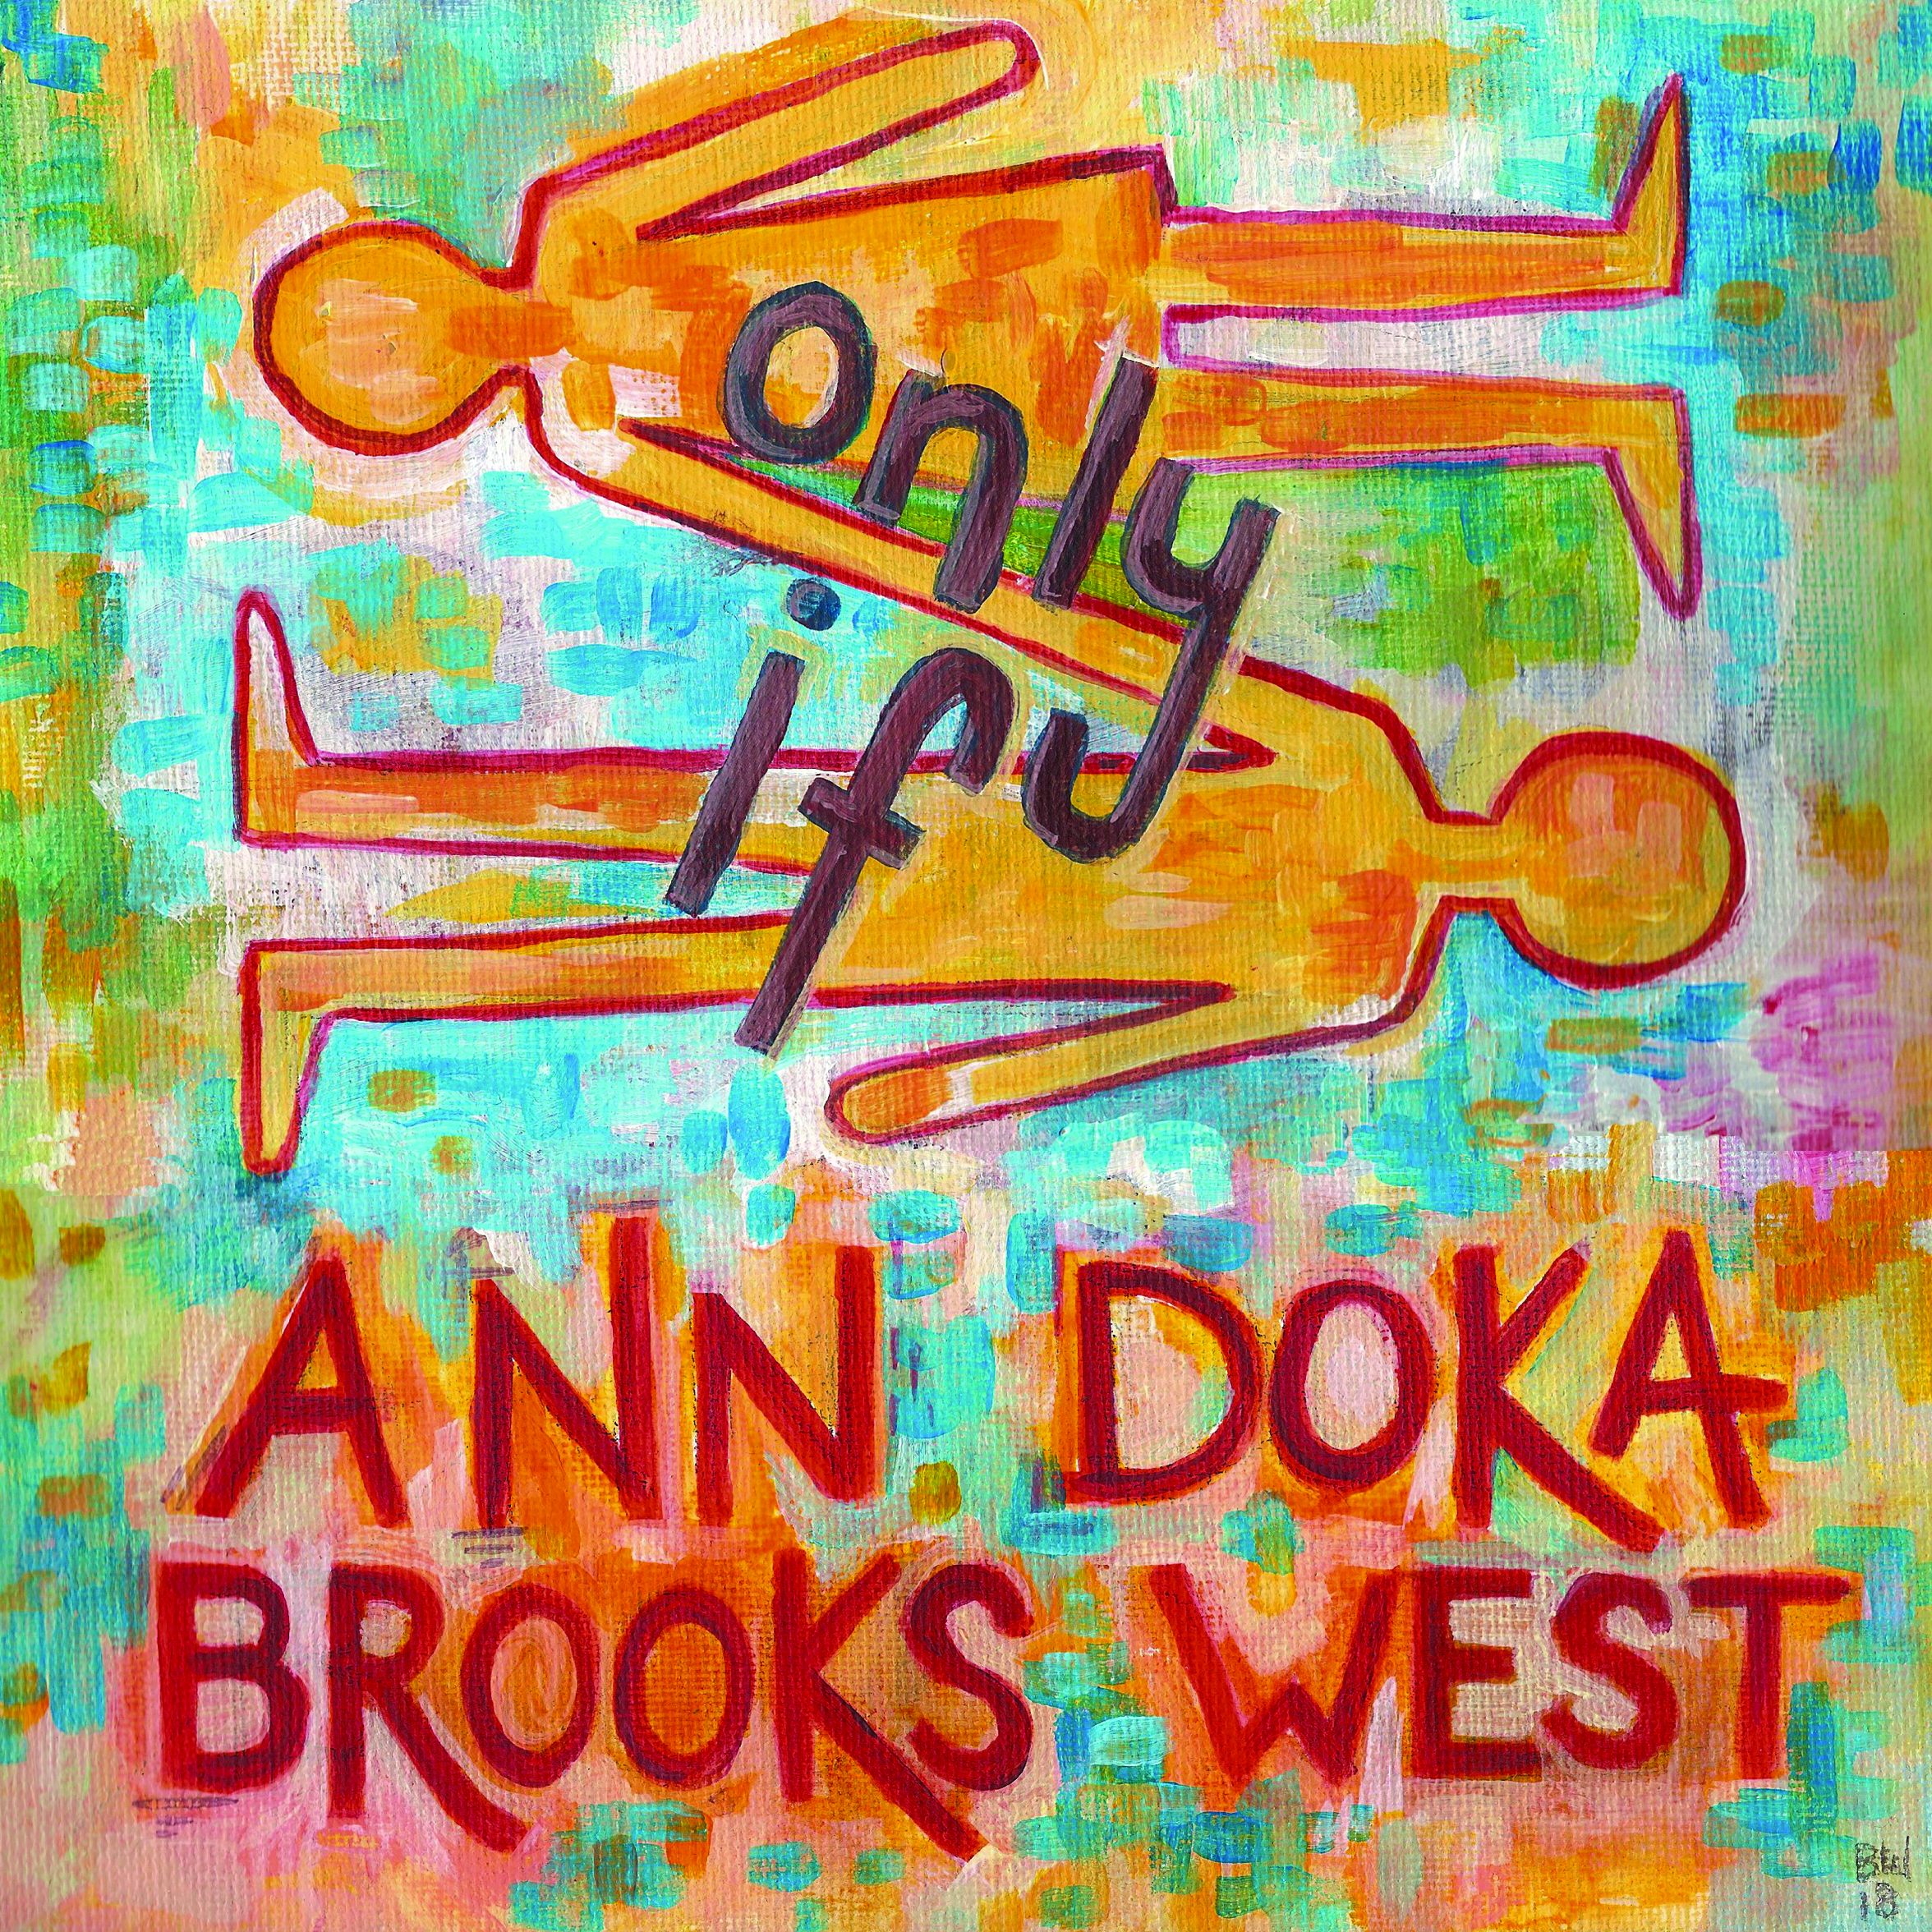 Brand New Music From Ann Doka and Brooks West